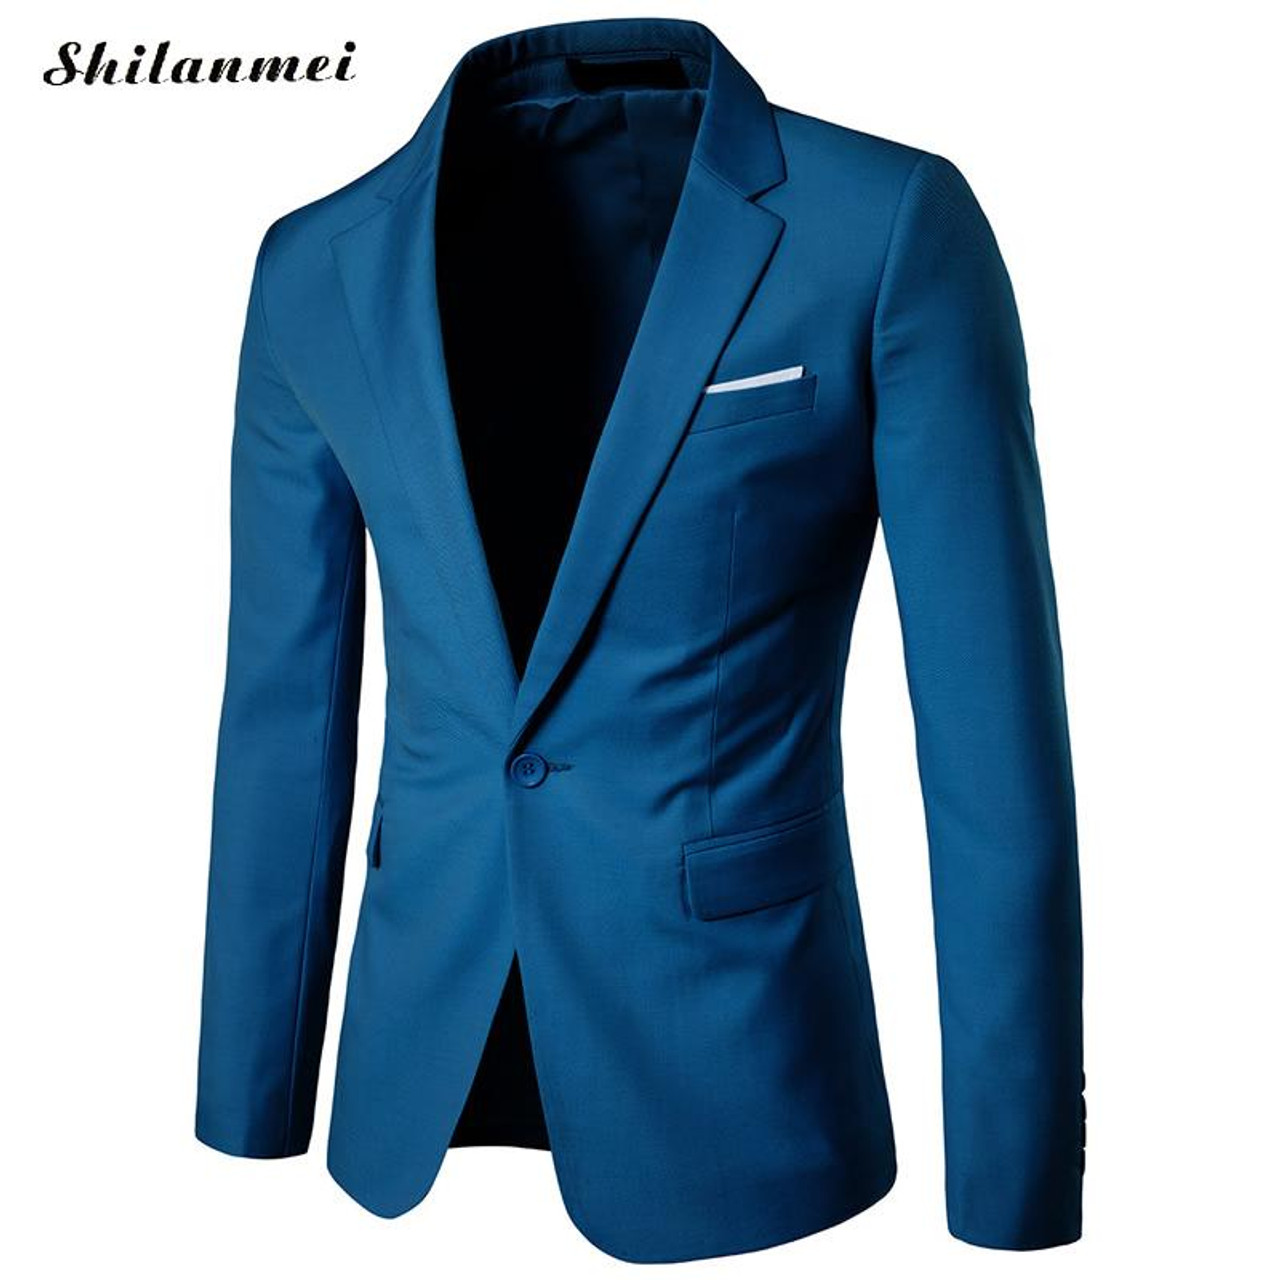 2017 New Fashion Mens Blazer Casual Suits Slim Fit Suit Jacket Men Veste Homme Costume Cotton Masculin Blazer Jacket Plus Size Onshopdeals Com